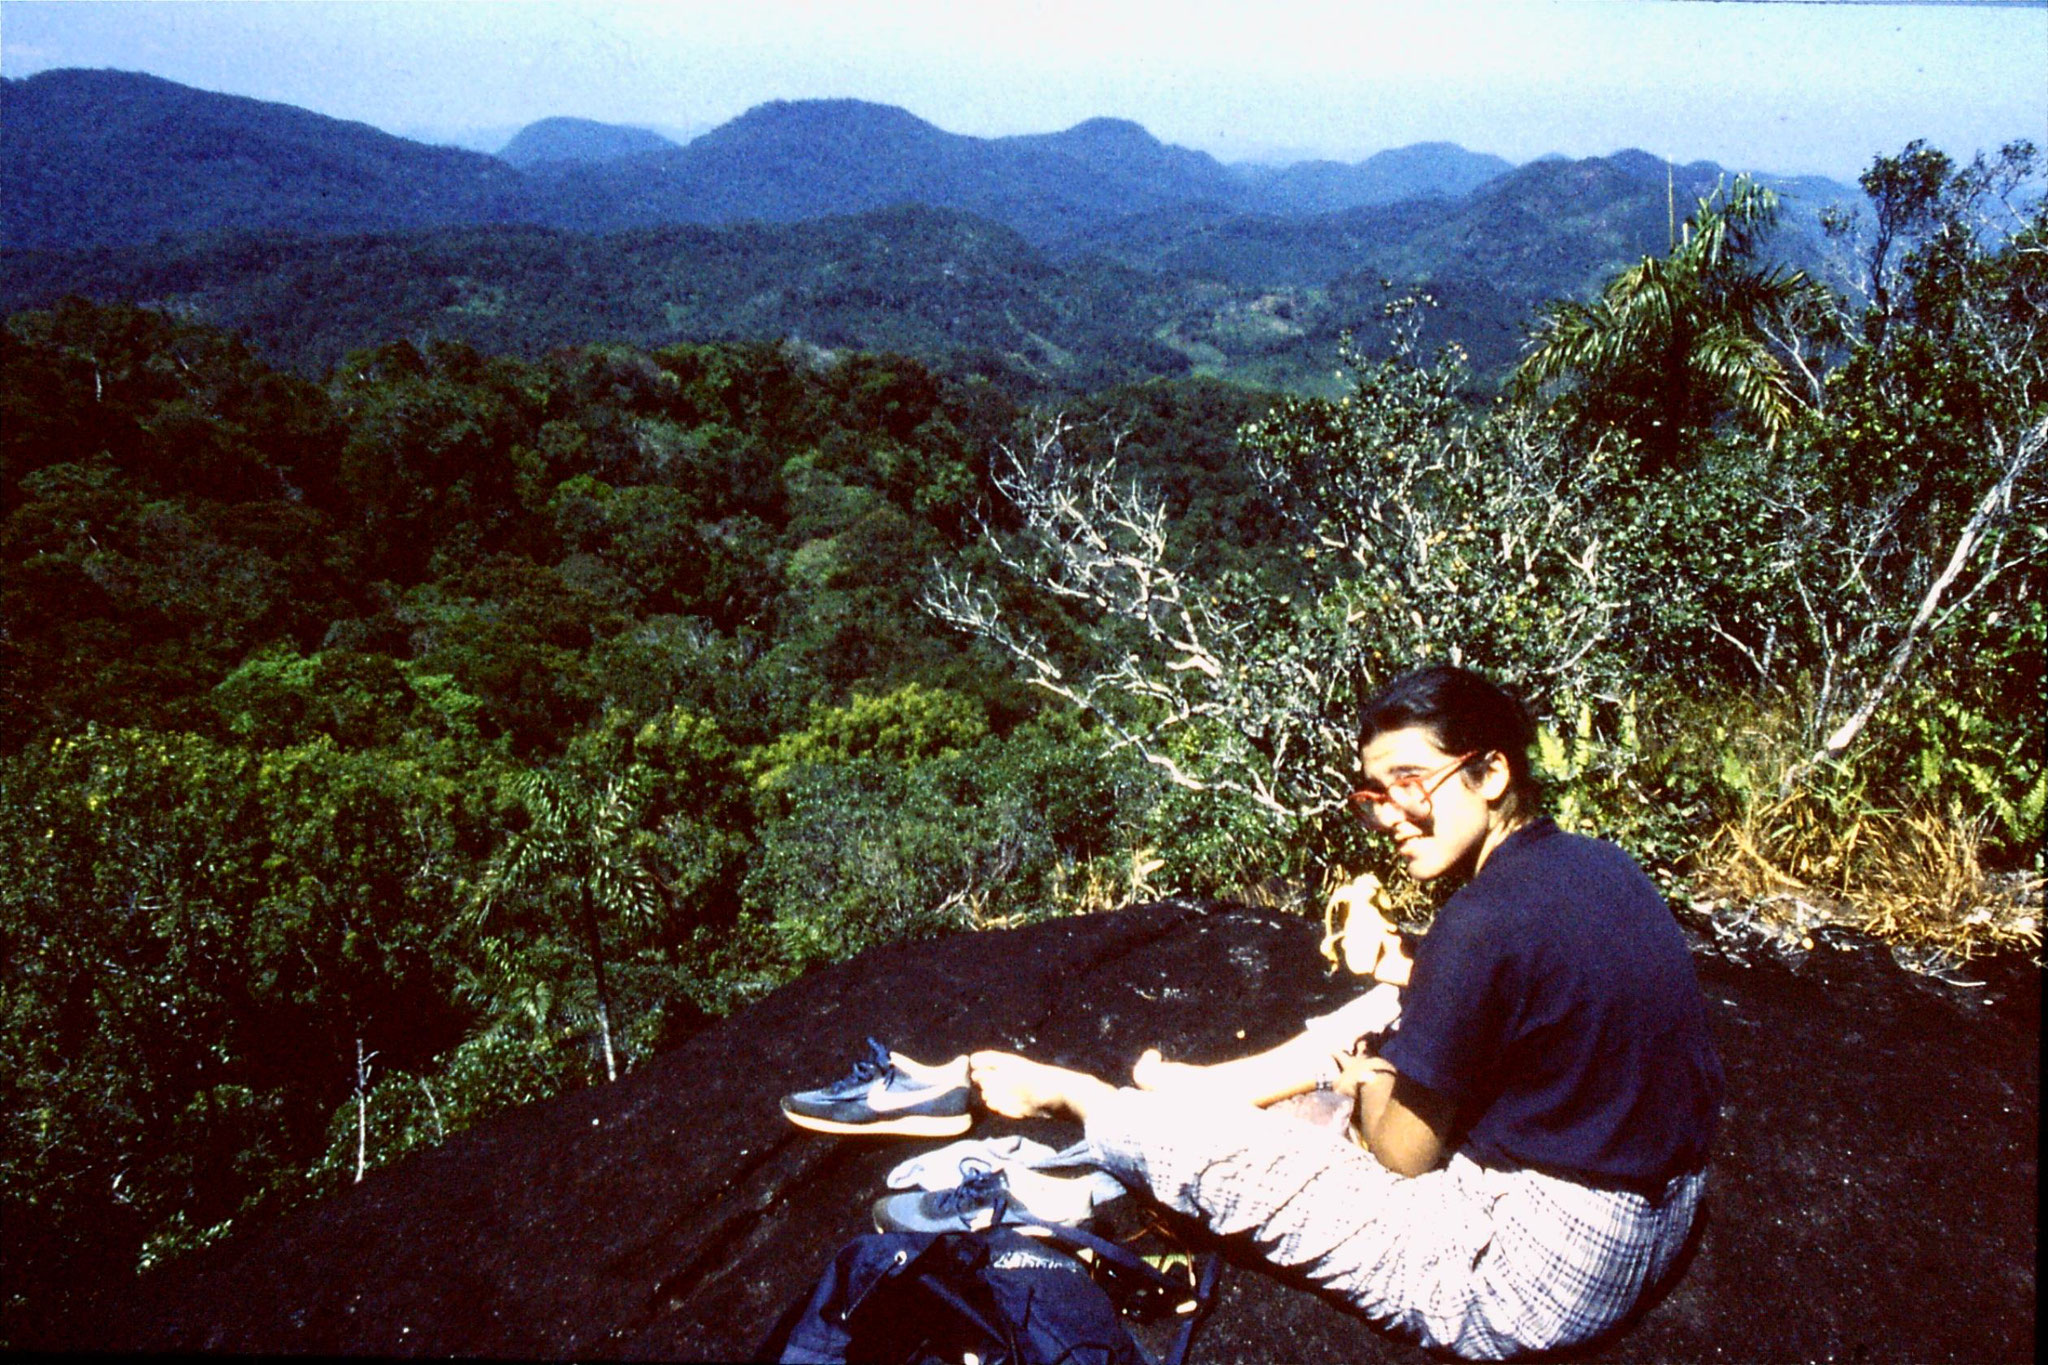 29/1/1990: 8: view across Sinharaja from top of Mouk wella hill